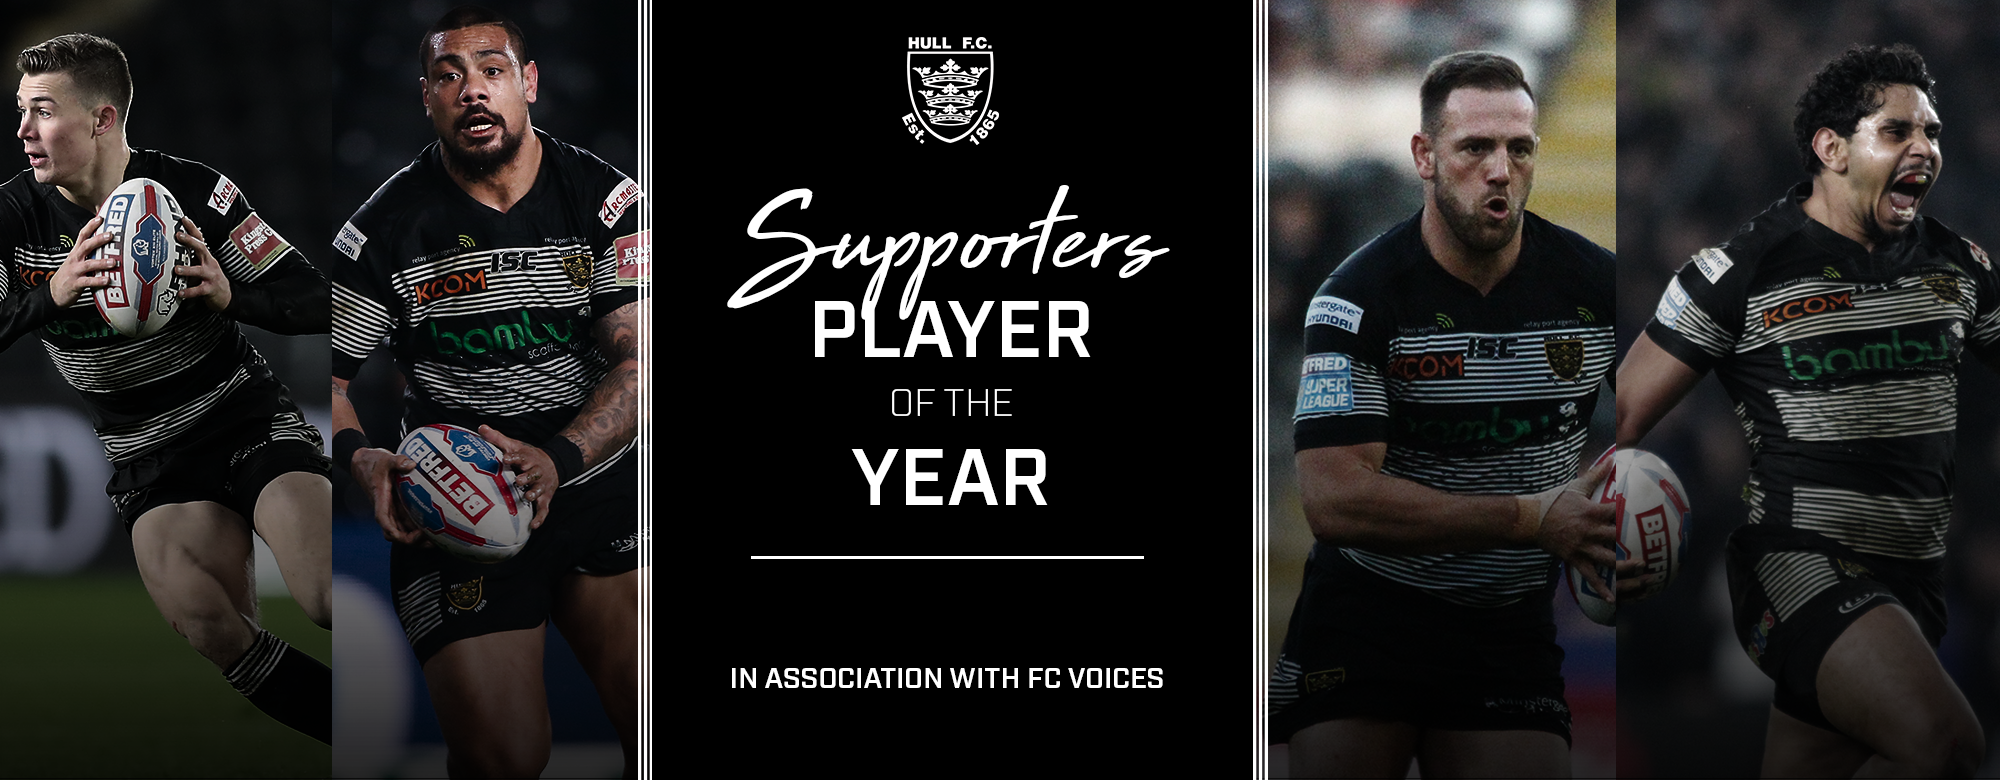 2017 Supporters' Player of the Year Shortlist Confirmed